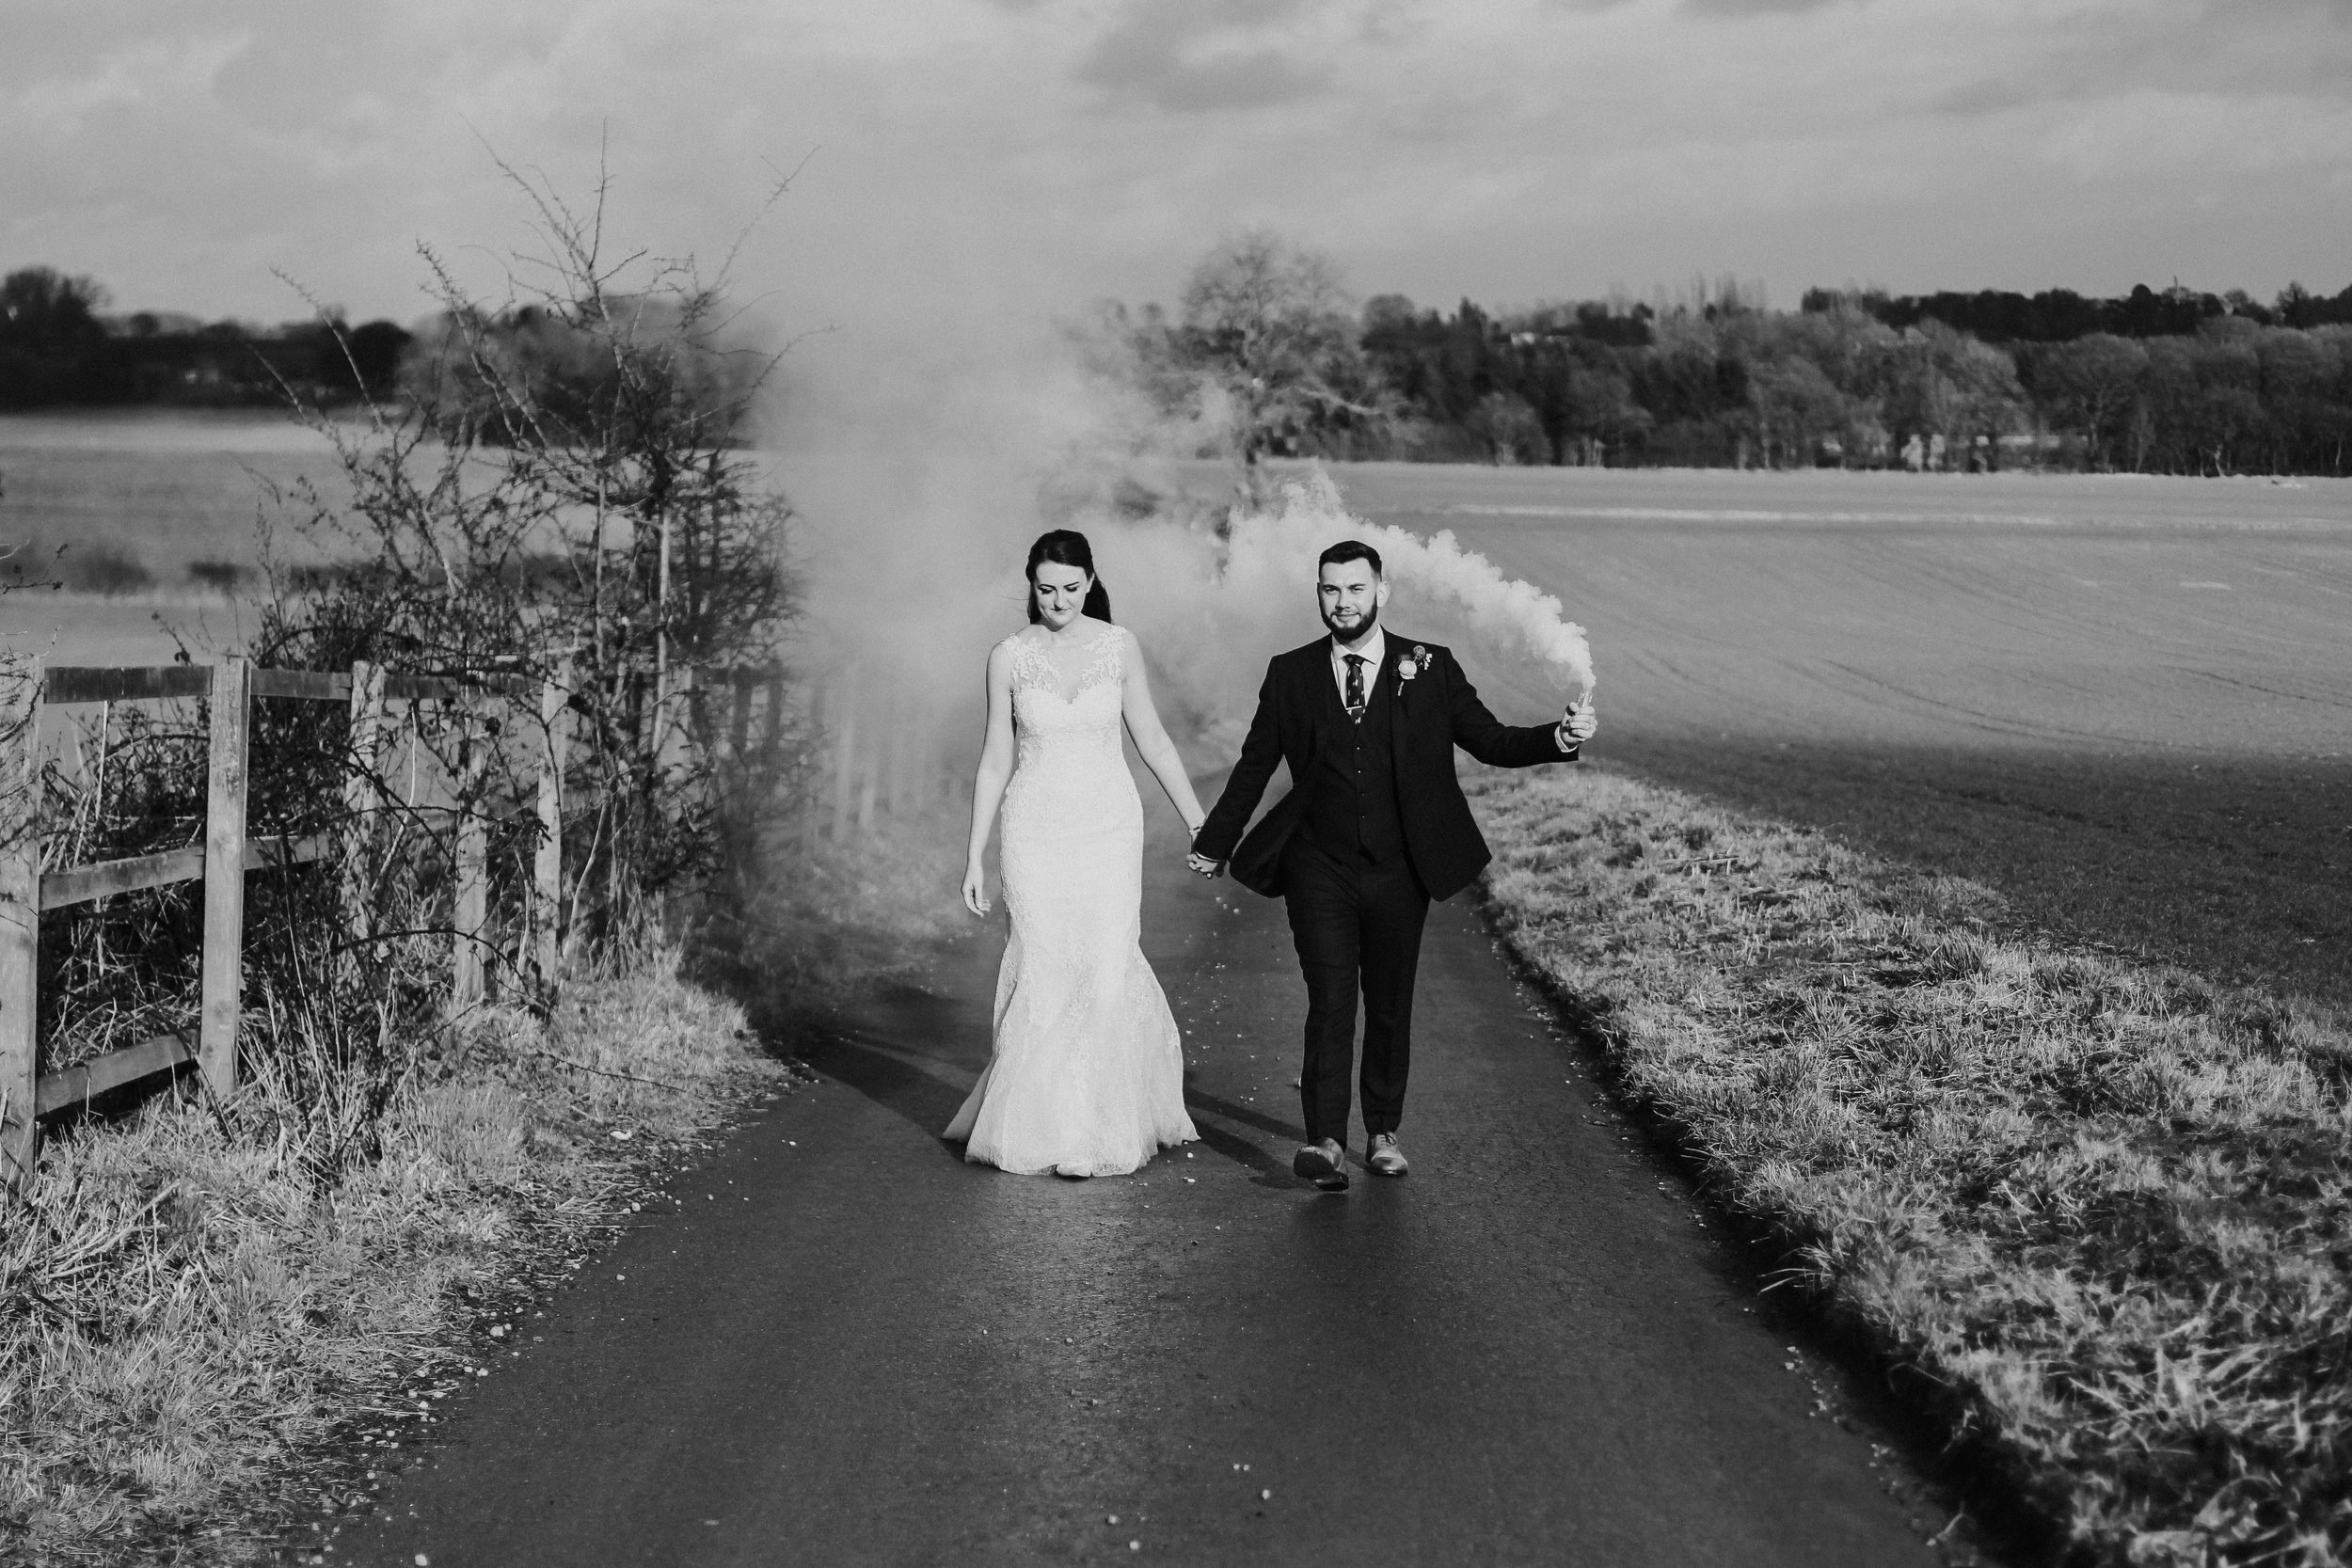 Standard Package£899 - Full day coverage (8-12 hours)500+ beautifully edited photos, ready to printOnline gallery ready to share with family and friends (10 Year access)Free pre-wedding consultation to get to know you both and find out more about your wedding plansFull UK Coverage